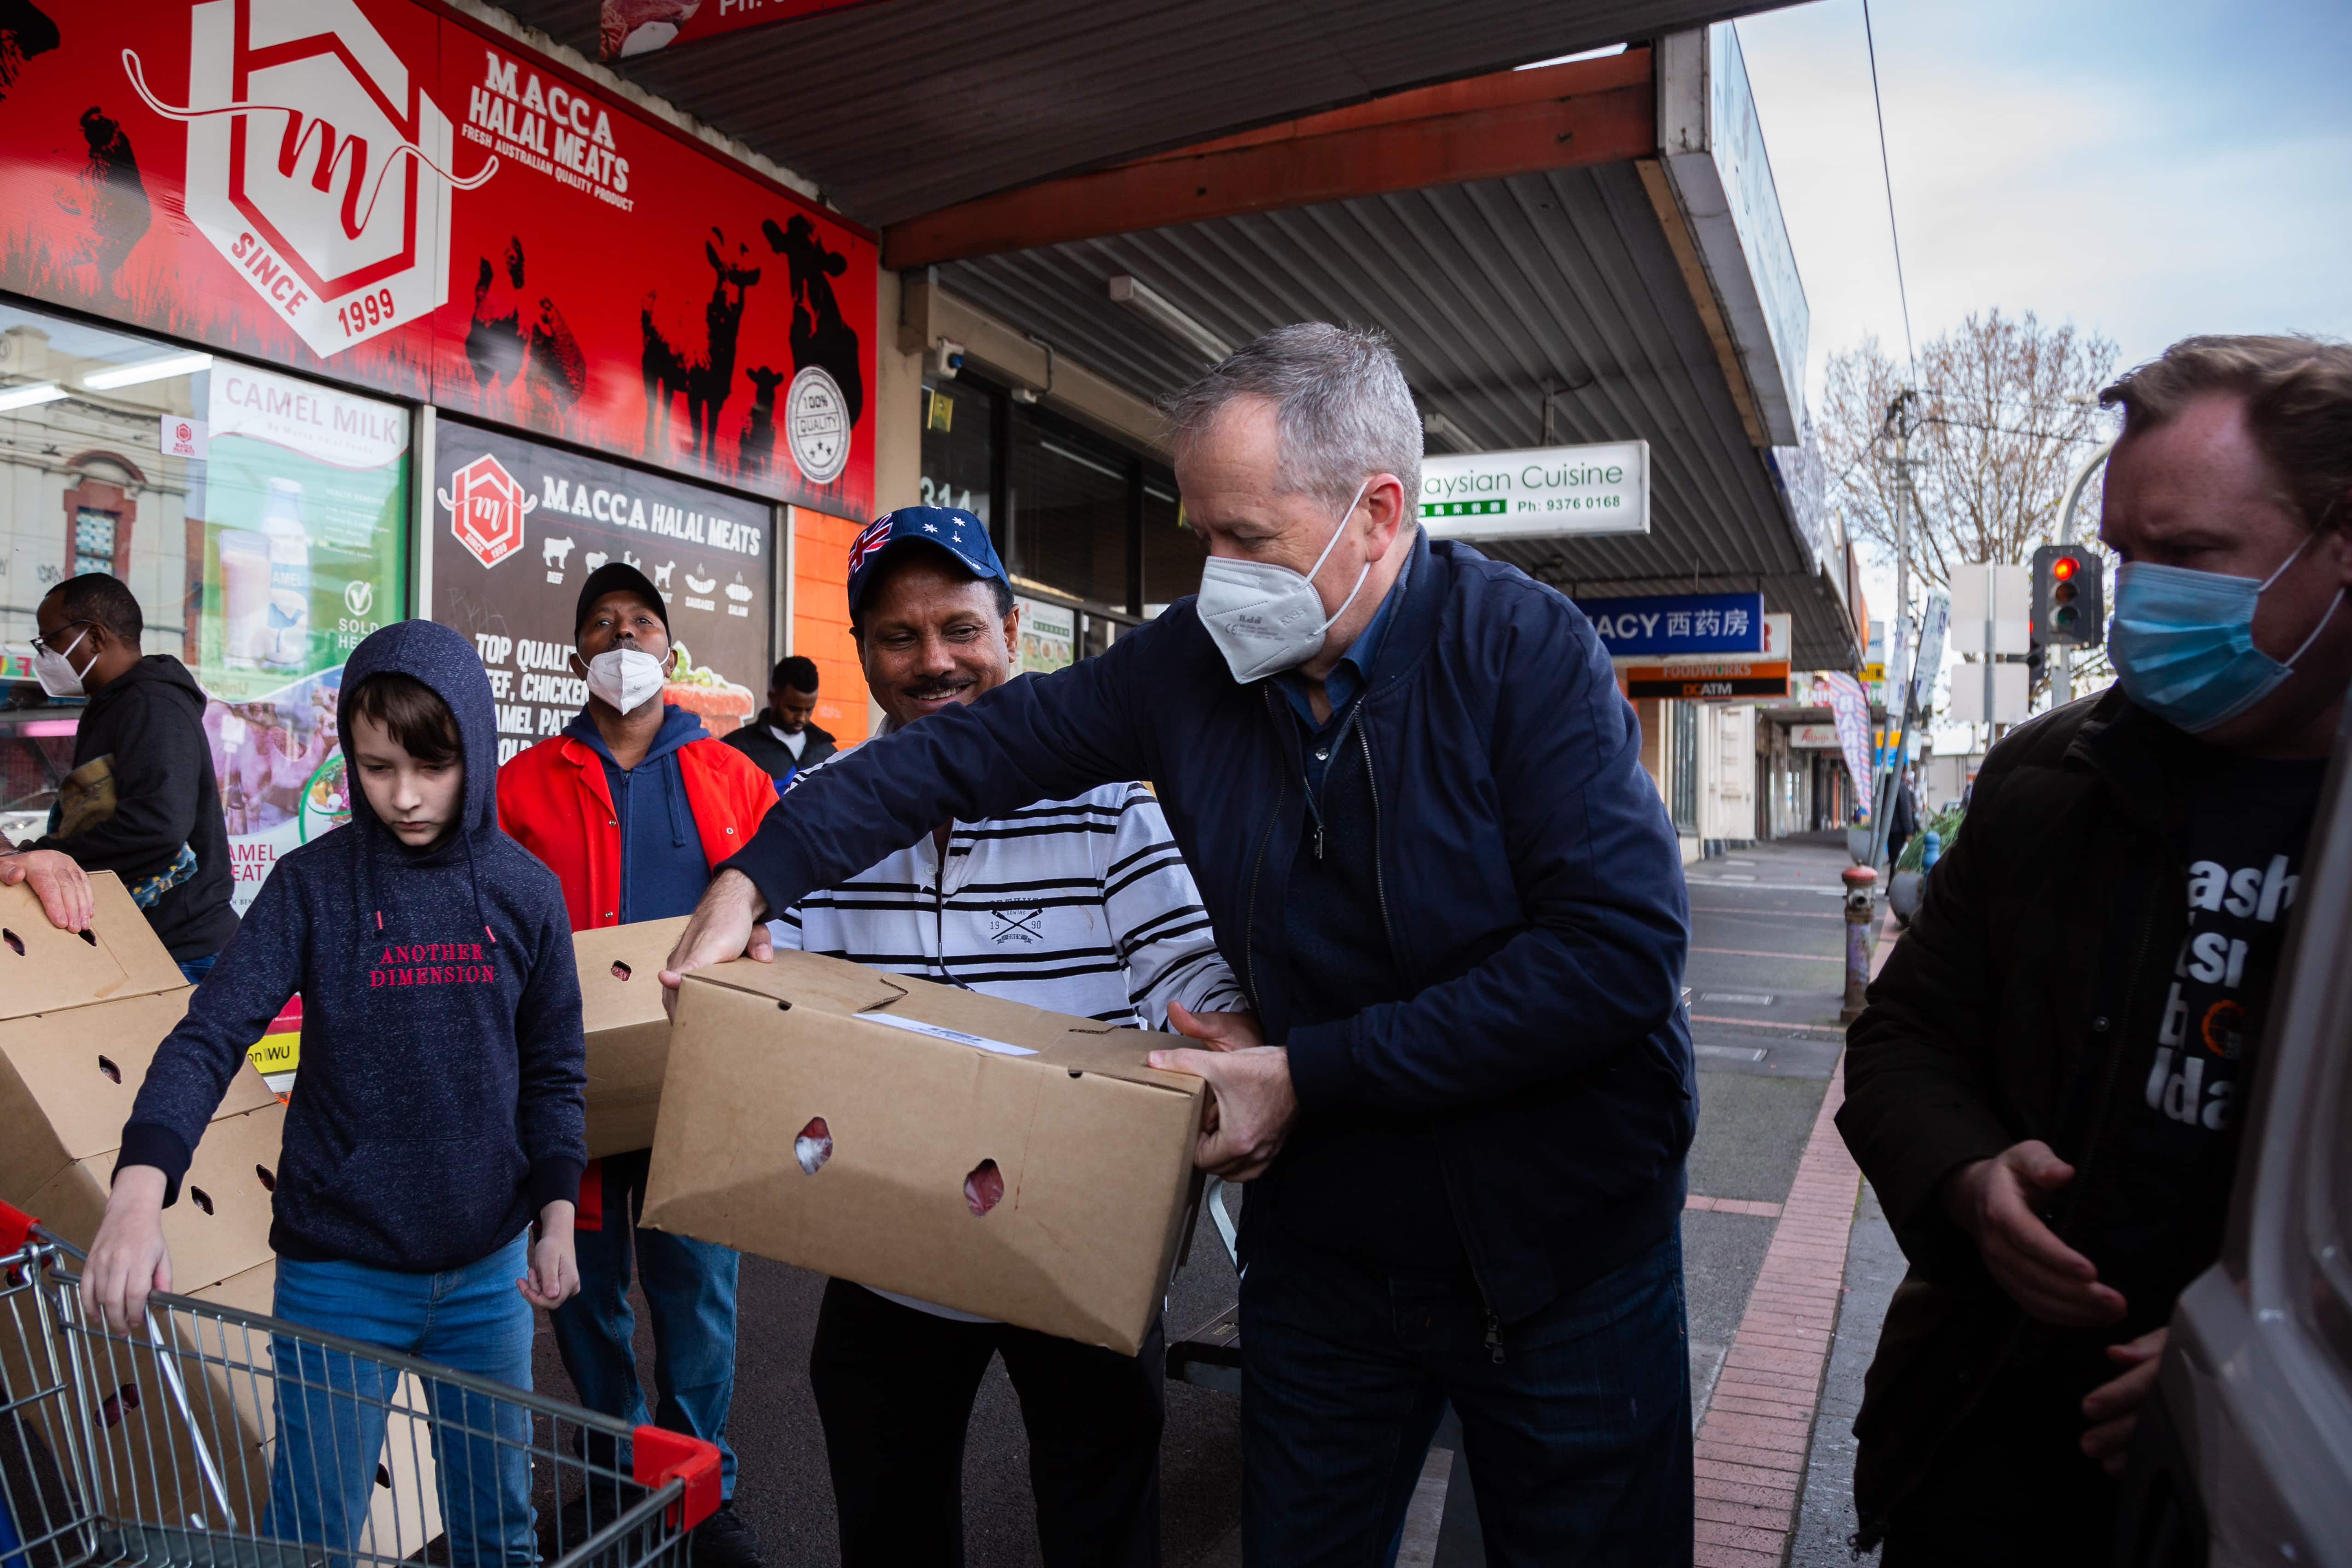 MELBOURNE, AUSTRALIA - JULY 10:  Bill Shorten (centre) and the Secretary of Victorian Trades Hall, Luke Hilakari (R) help locals load much needed halal meat into a truck bound for the residents of the locked down housing commission towers during COVID 19 on 10 July, 2020 in Melbourne, Australia. Former Federal Labor Leader Bill Shorten, along with close allies at Trades Hall help deliver Halal meat, supplied by Macca Halal Foods to the locked down housing commission towers following a COVID-19 outbreak detected inside the complex. Mr Shorten was able to use his high profile to ensure food was not turned away by police so that it would reach the residents inside. (Photo by Speed Media/Icon Sportswire)